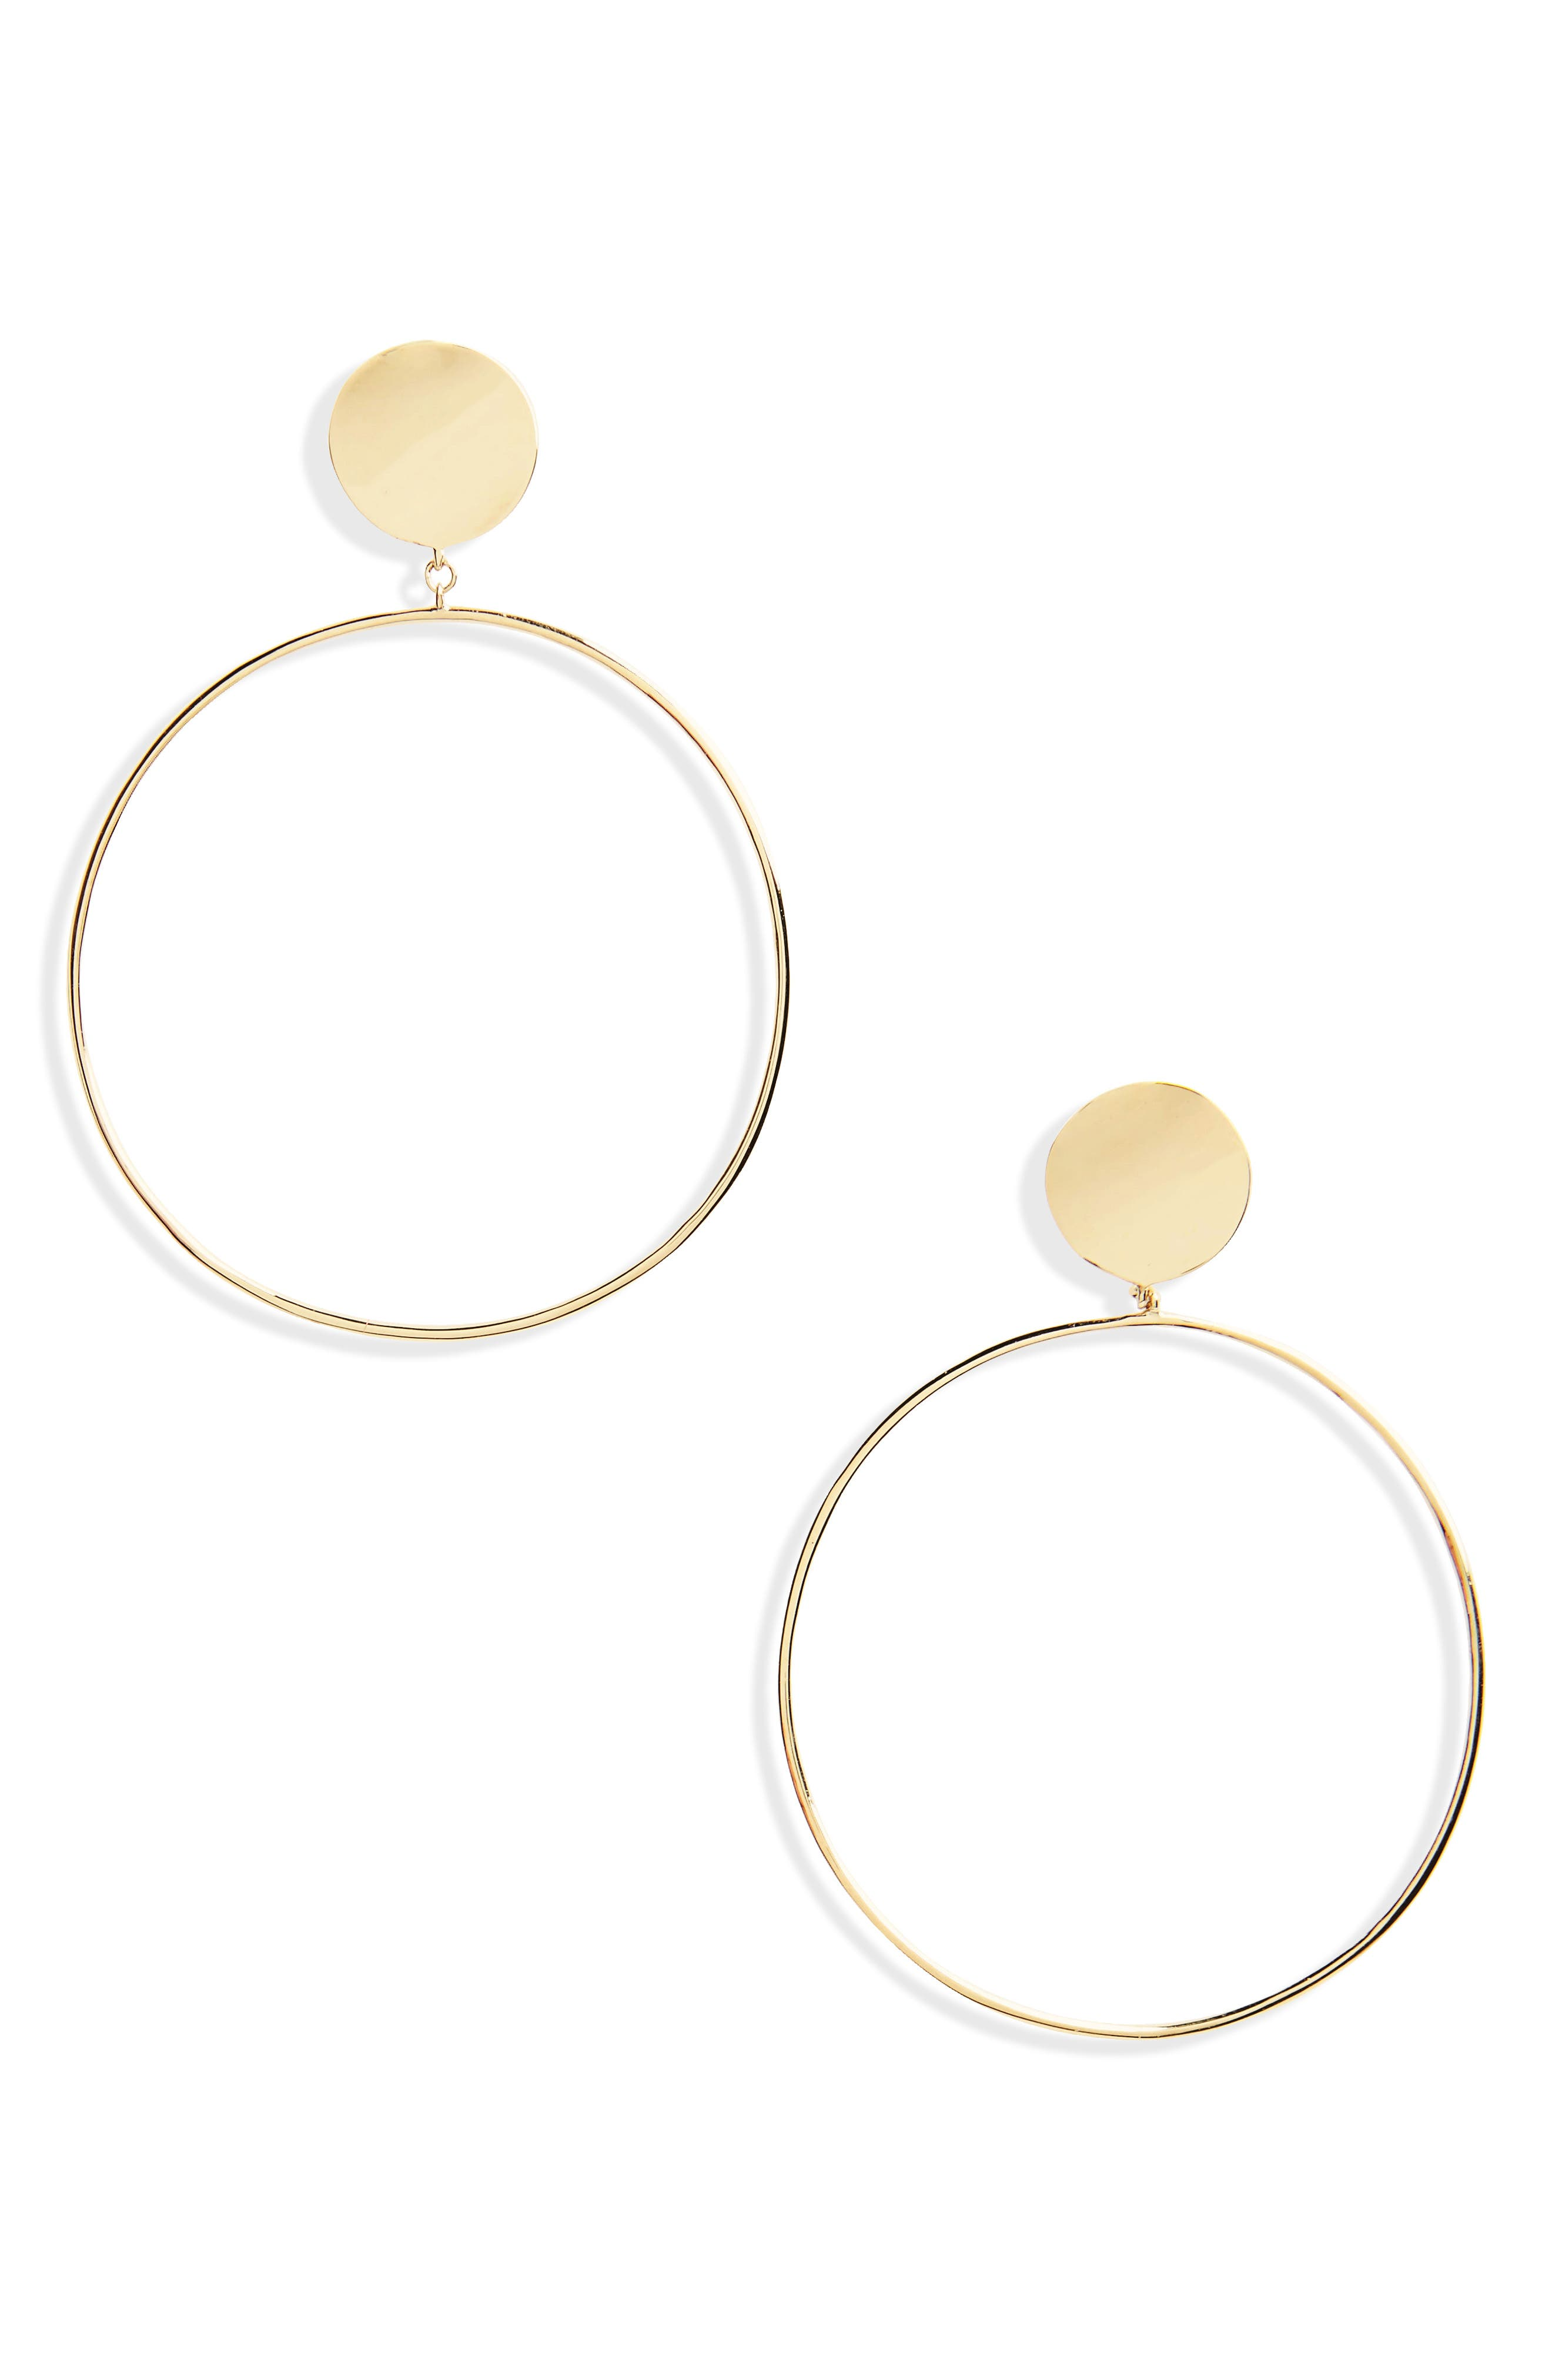 Front Hoop Earrings,                             Main thumbnail 1, color,                             Yellow Gold